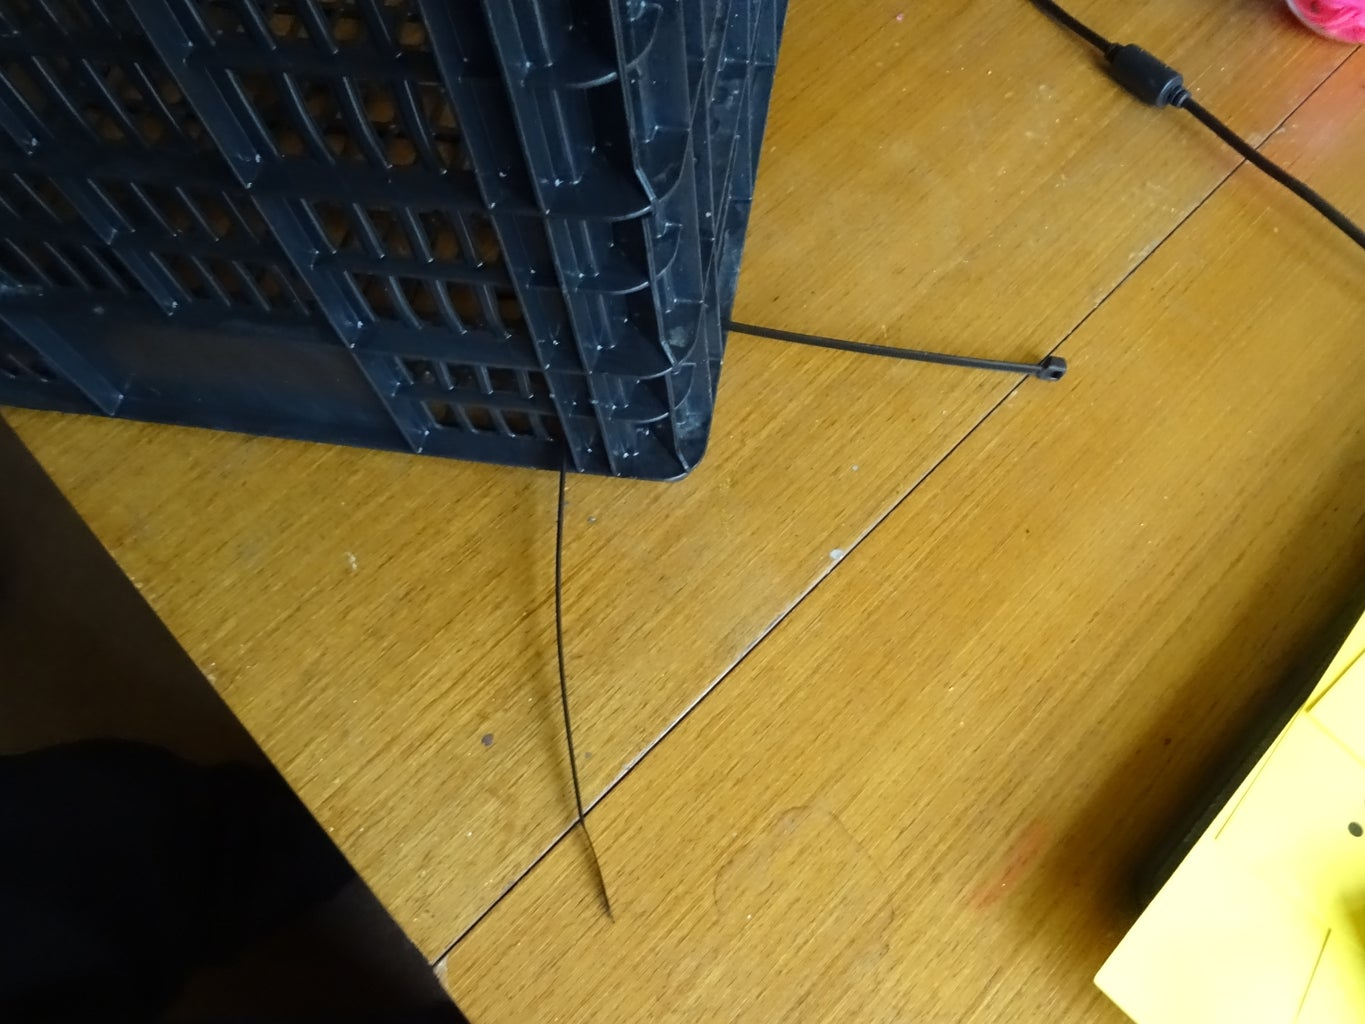 Cable Tie It Together